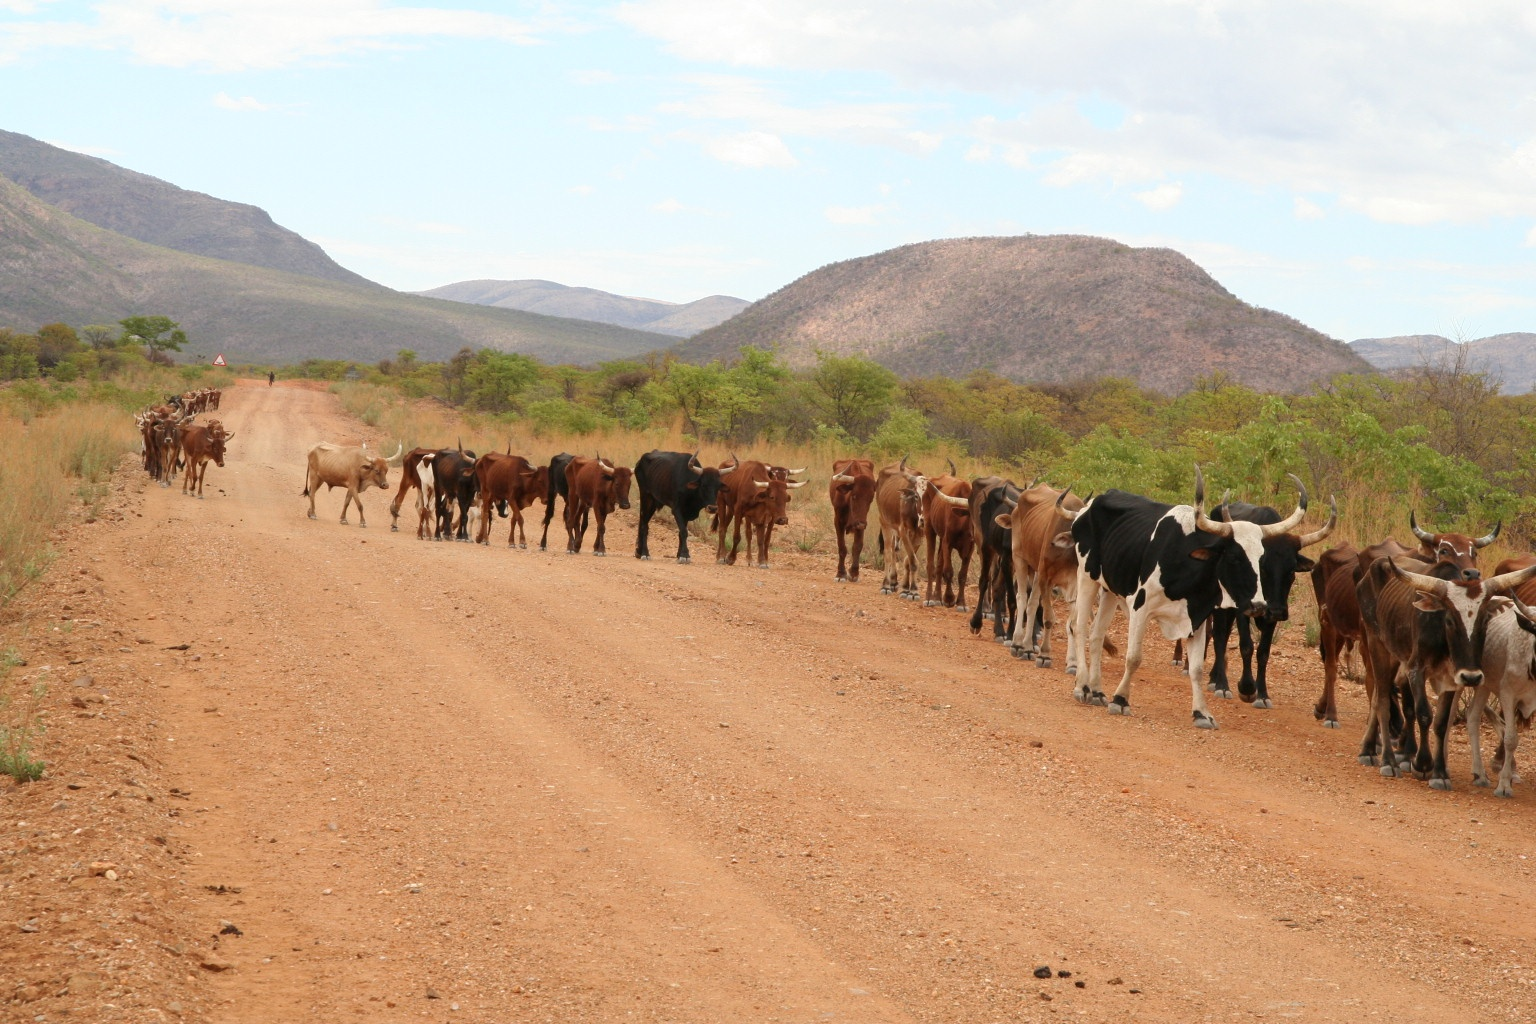 Cattle on the road